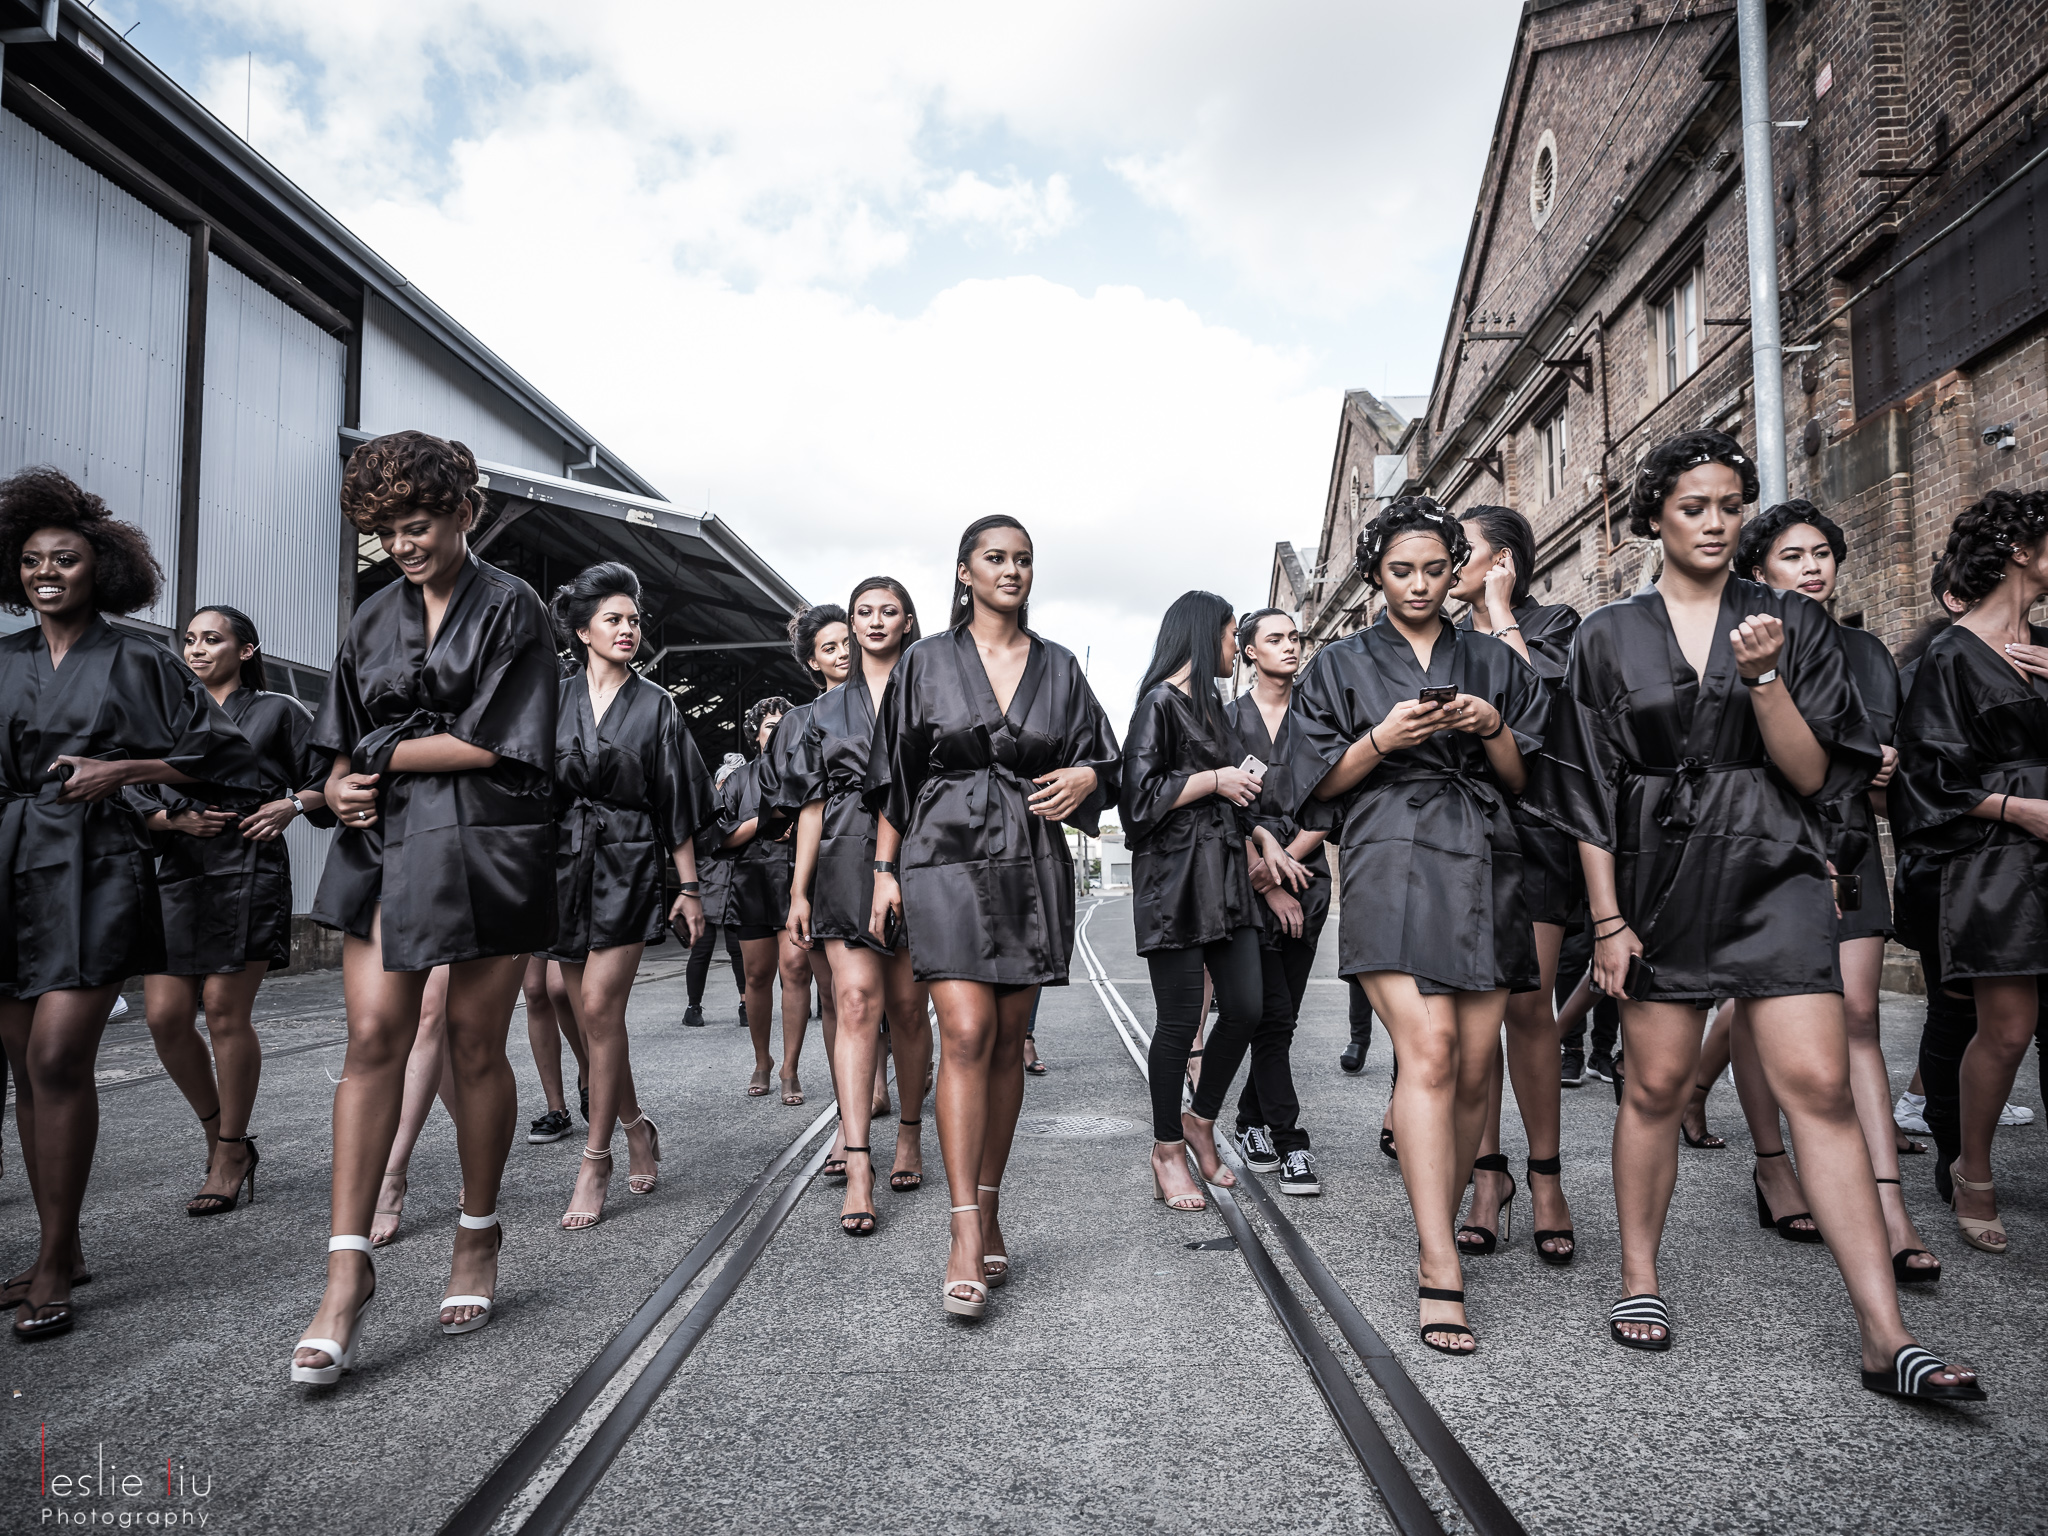 Australia's Pacific Runway event is changing the face of fashion to include Women of colour - Words by: Natalie Shehata